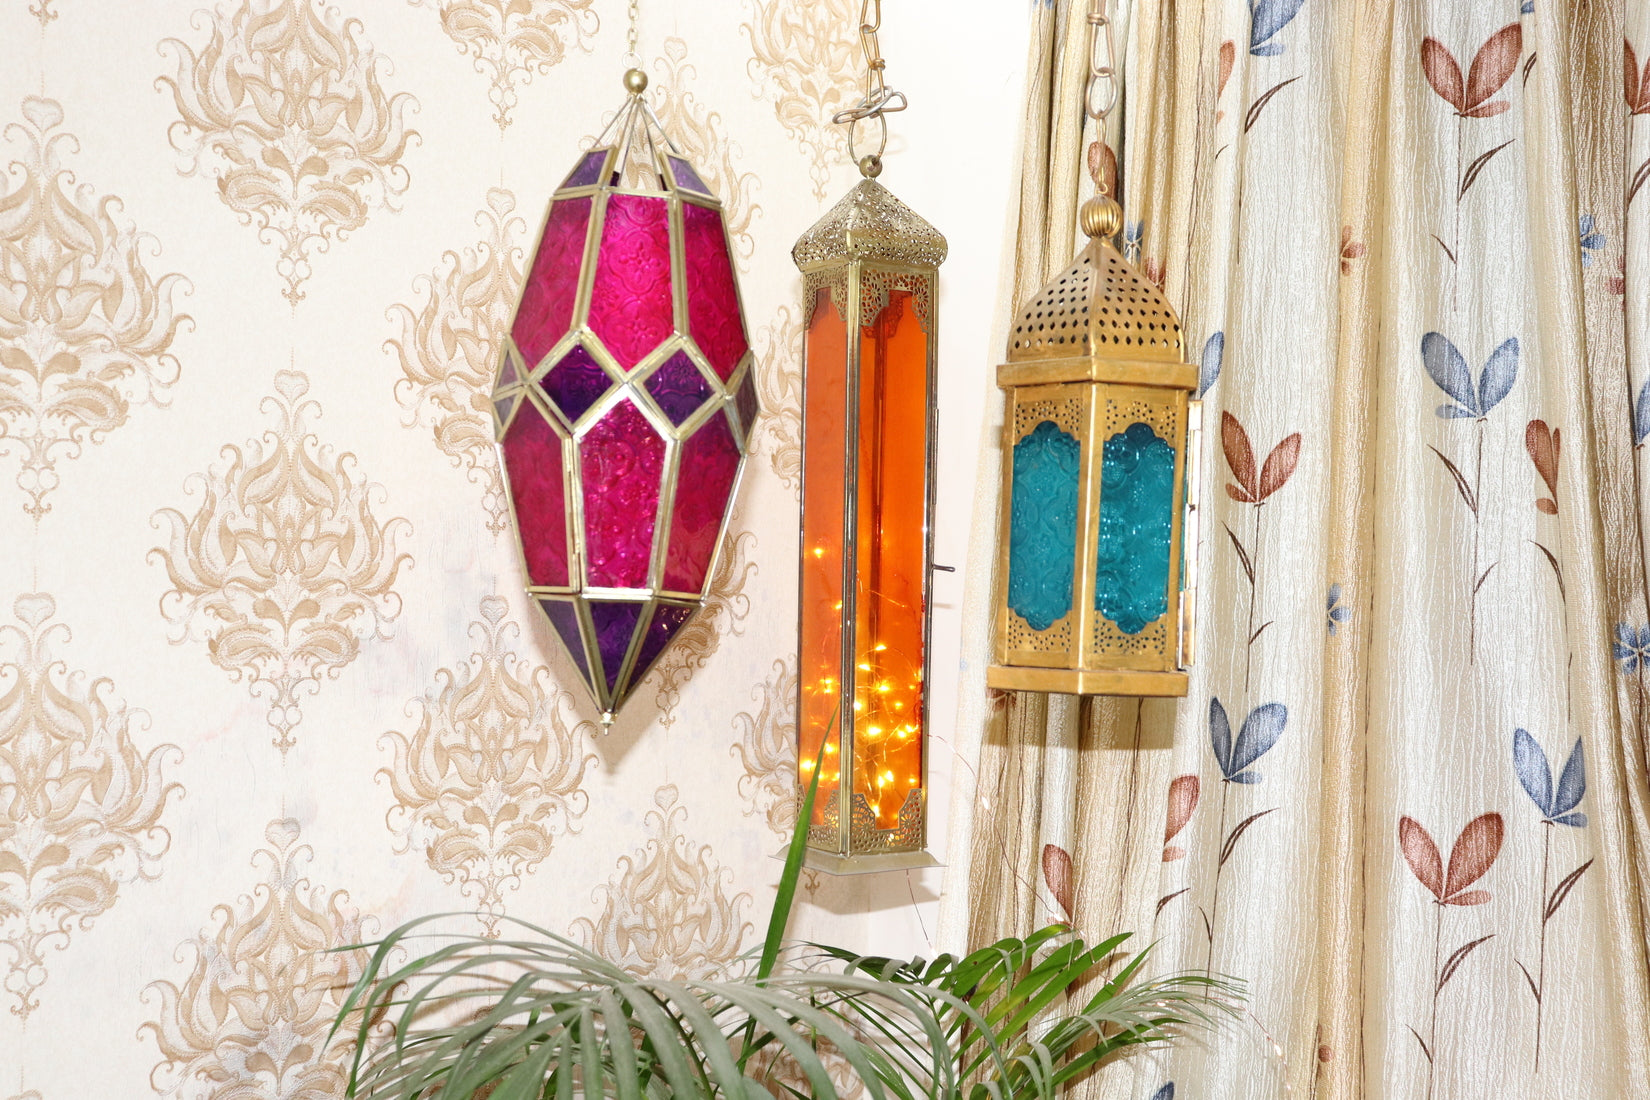 Moroccan Hexagon lantern with hanging chain and tea light holder